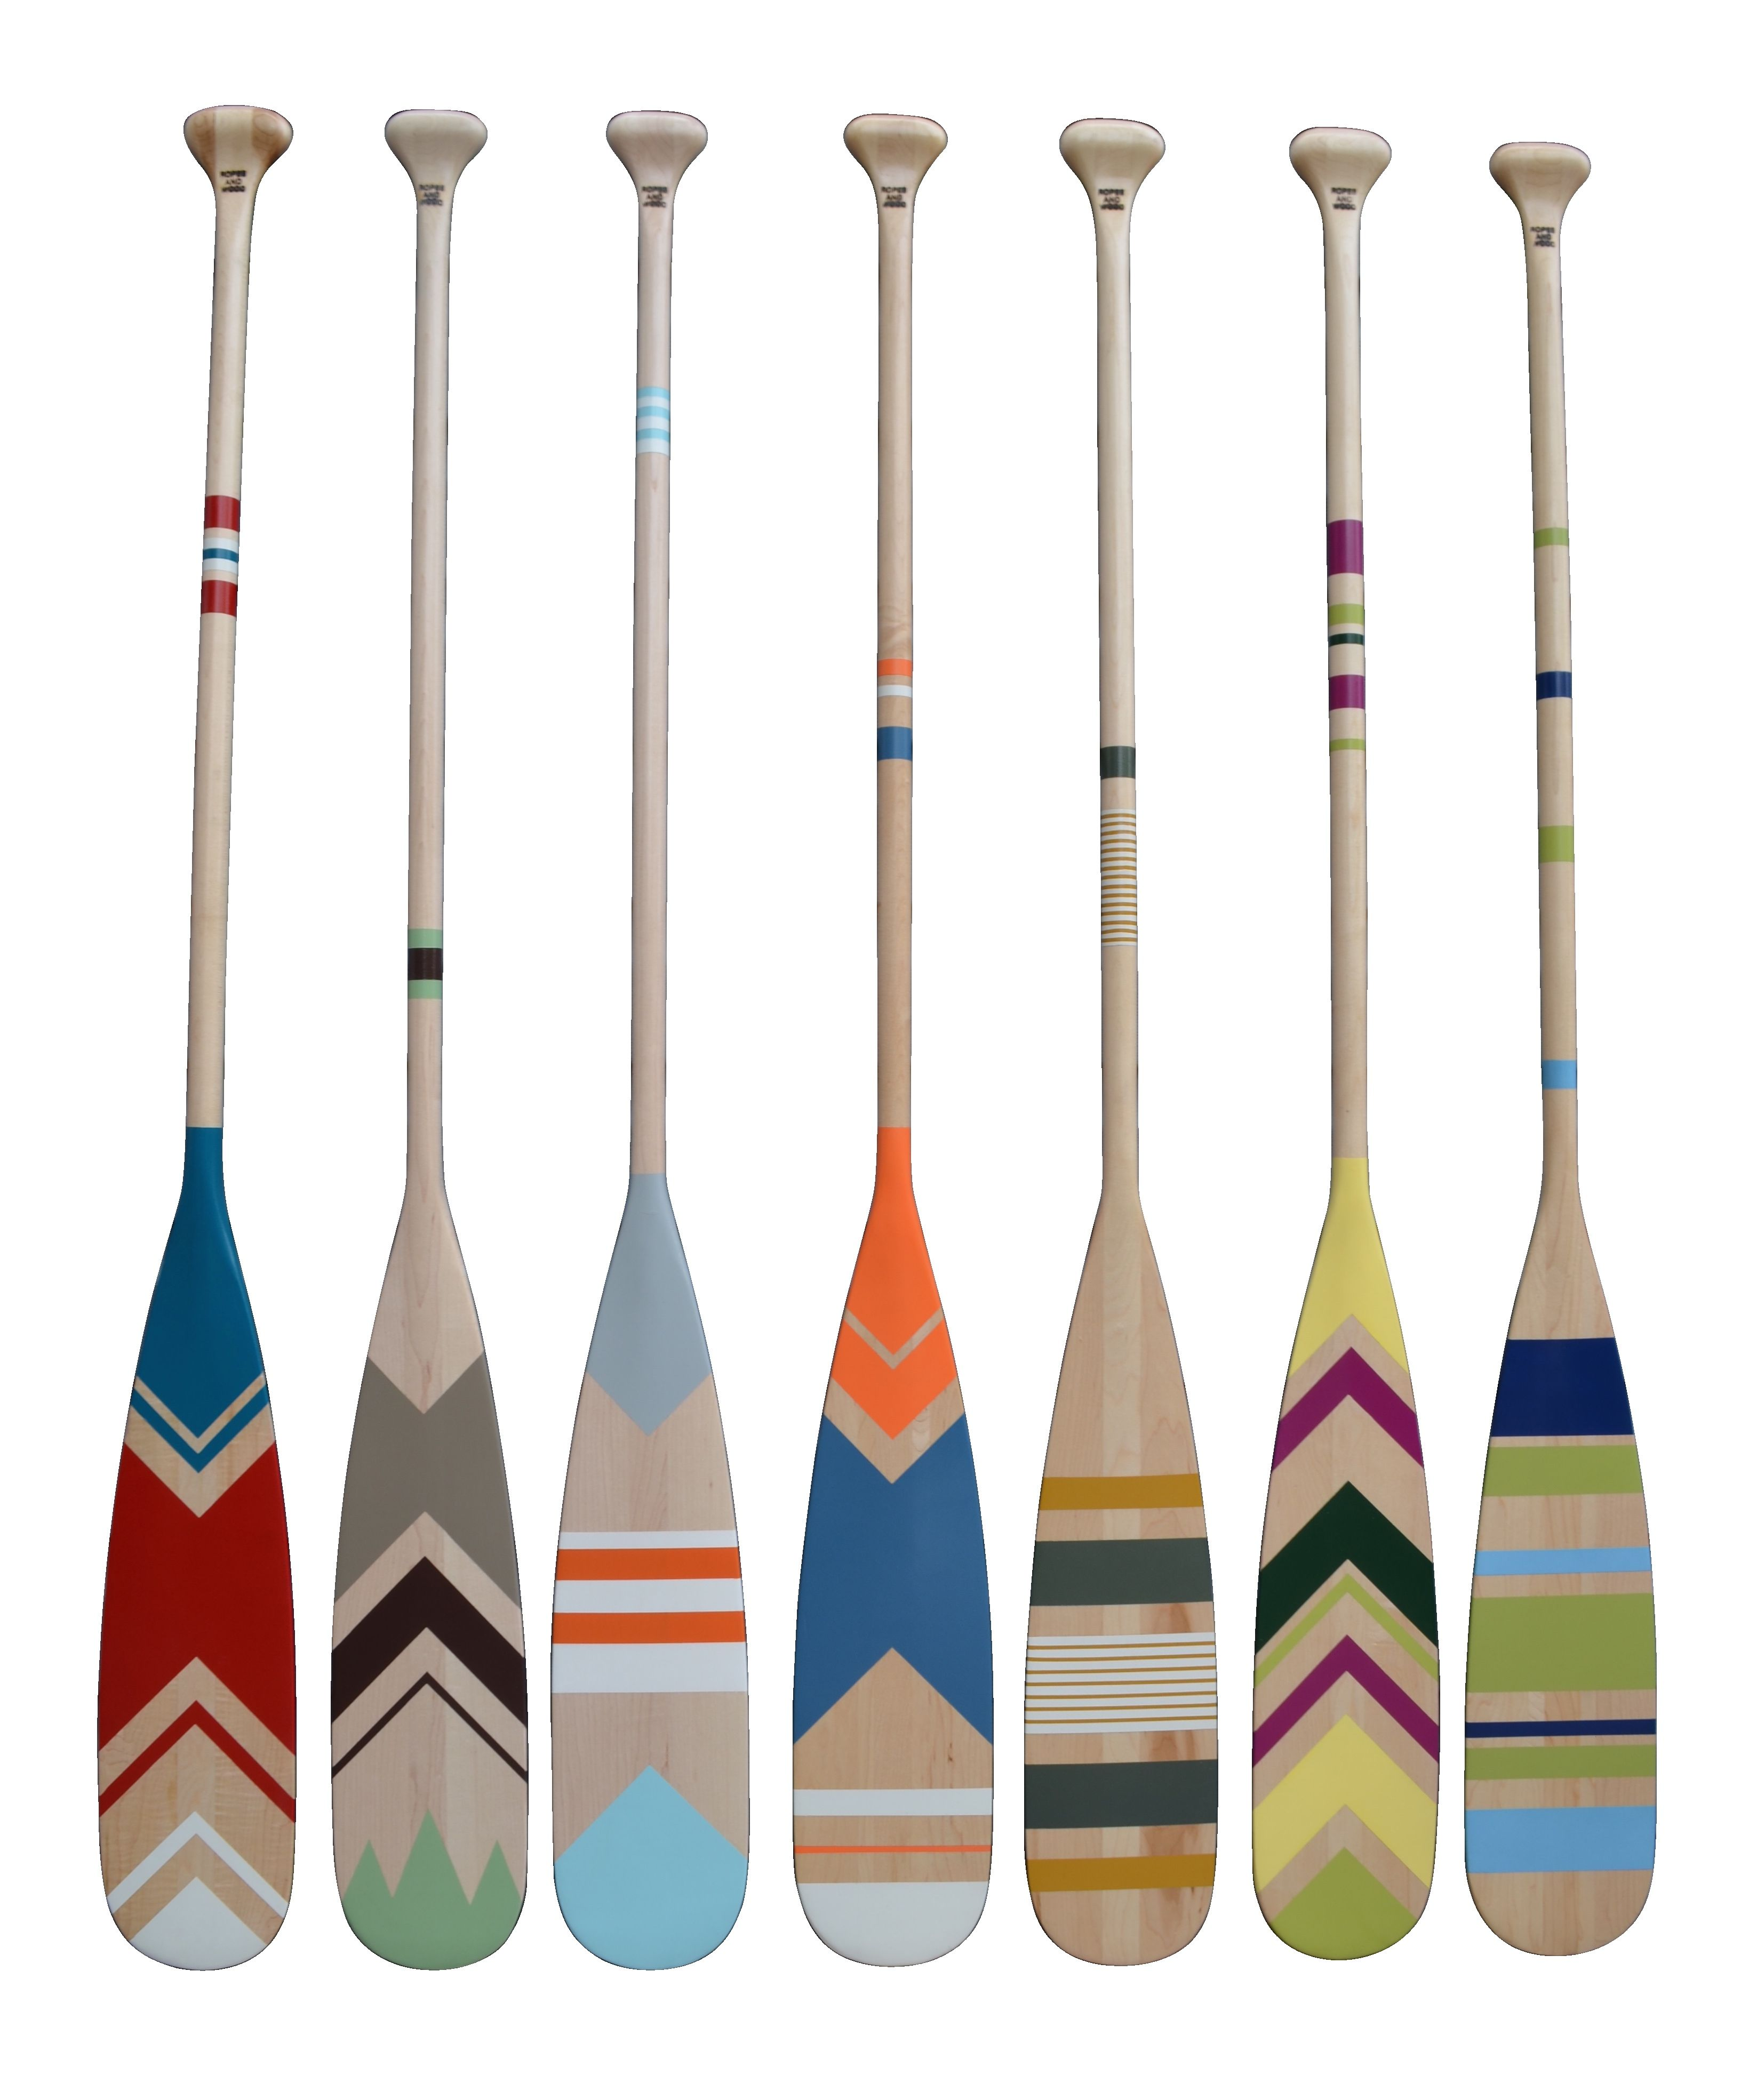 Nautical Wall Decor Oars: Hand Painted Canoe Paddle Collection. Pagaies De Canot